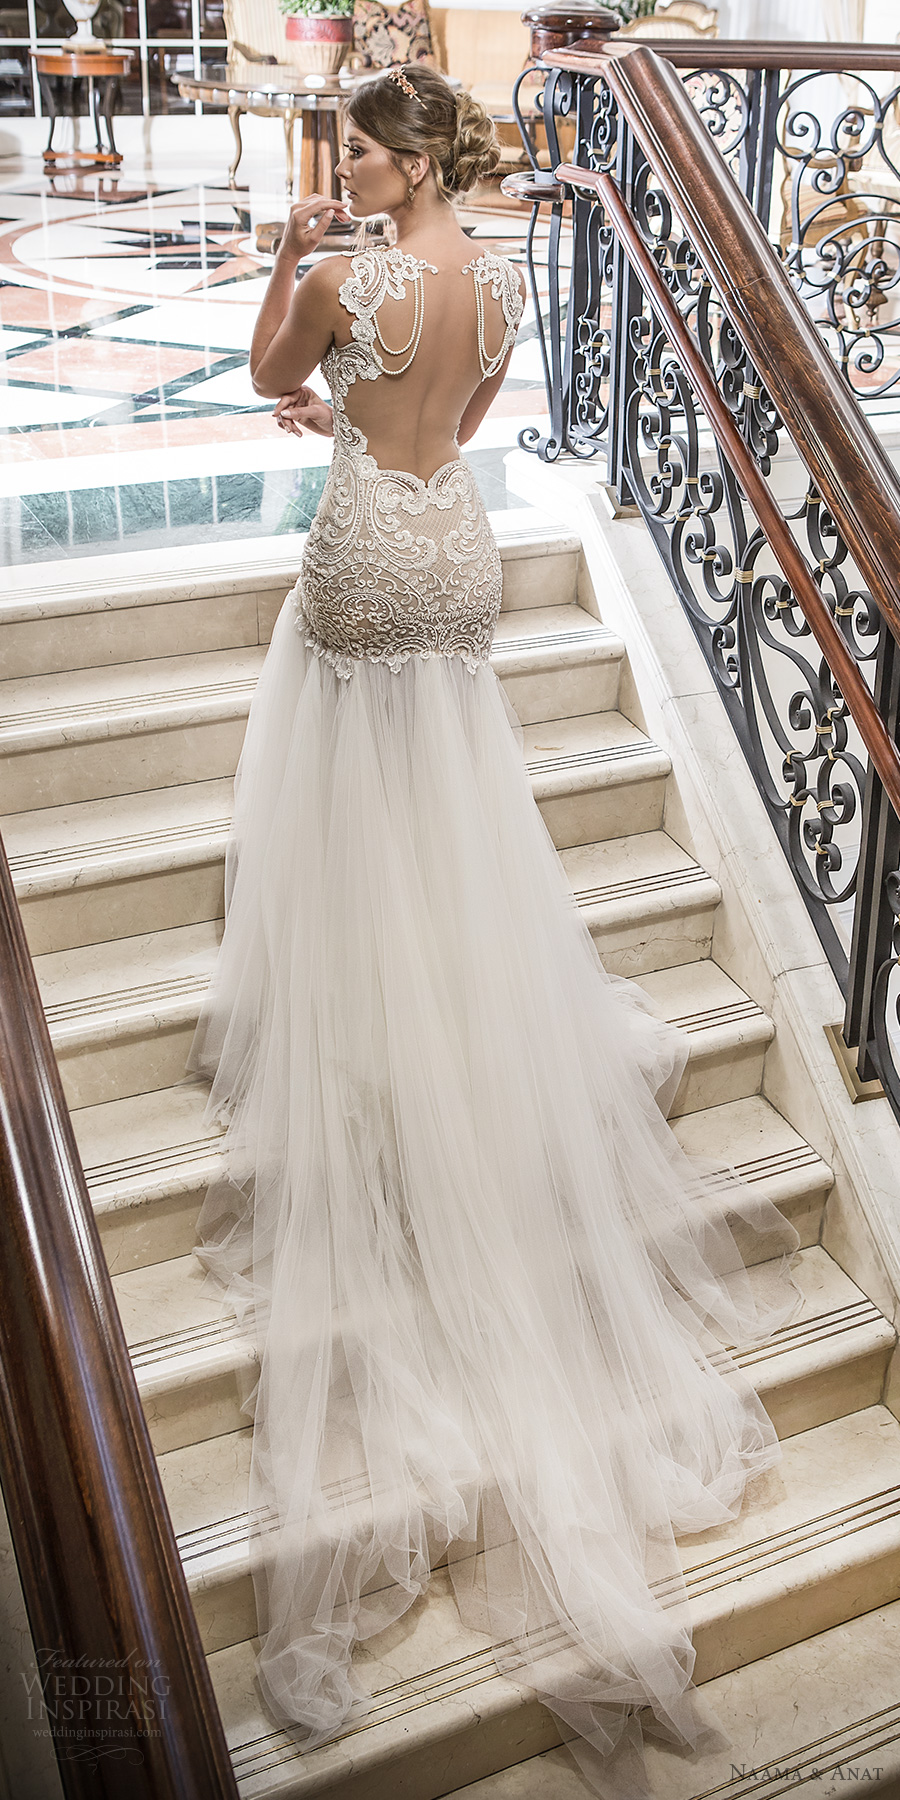 naama and anat 2018 bridal sleeveless deep plunging sweetheart neckline heavily embellished bodice tulle skirt champagne elegant sexy mermaid wedding dress open low back chapel train (devine) bv